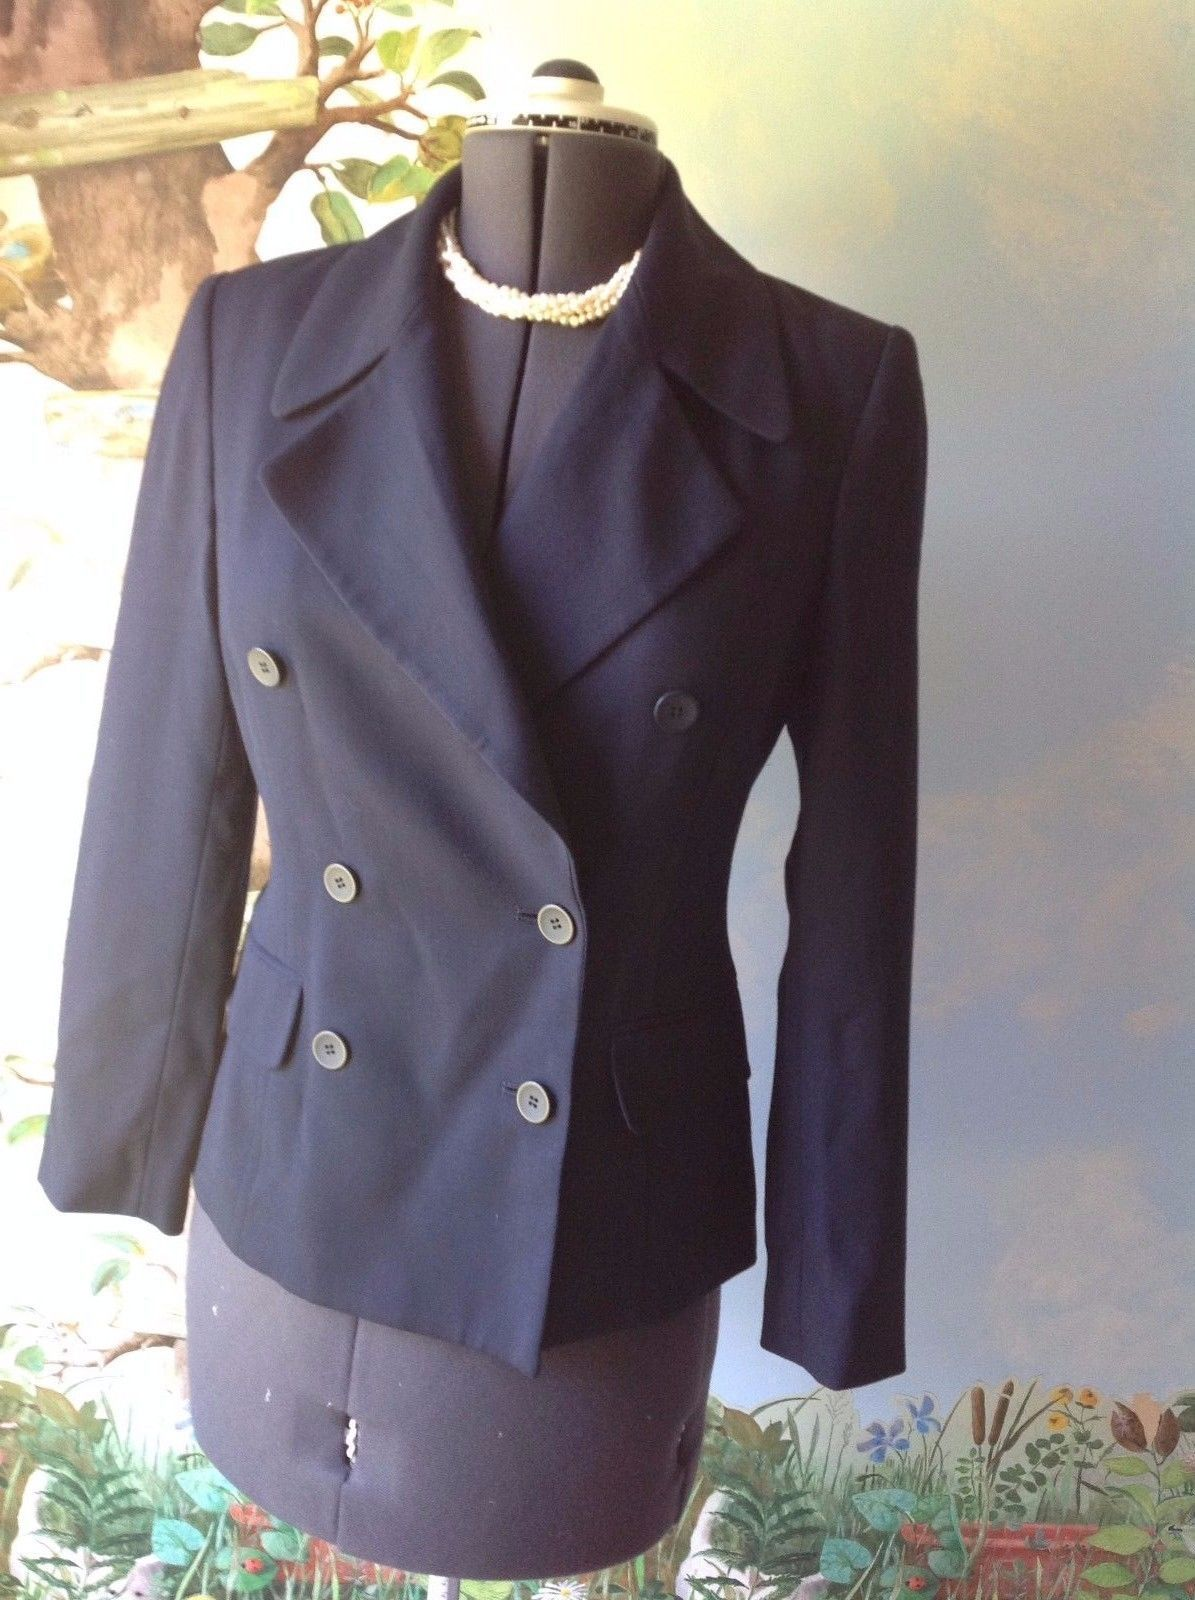 Primary image for M. T. Morgan Taylor Studio  Long Sleeve Blue Wool Suit Jacket Blazer SZ 4